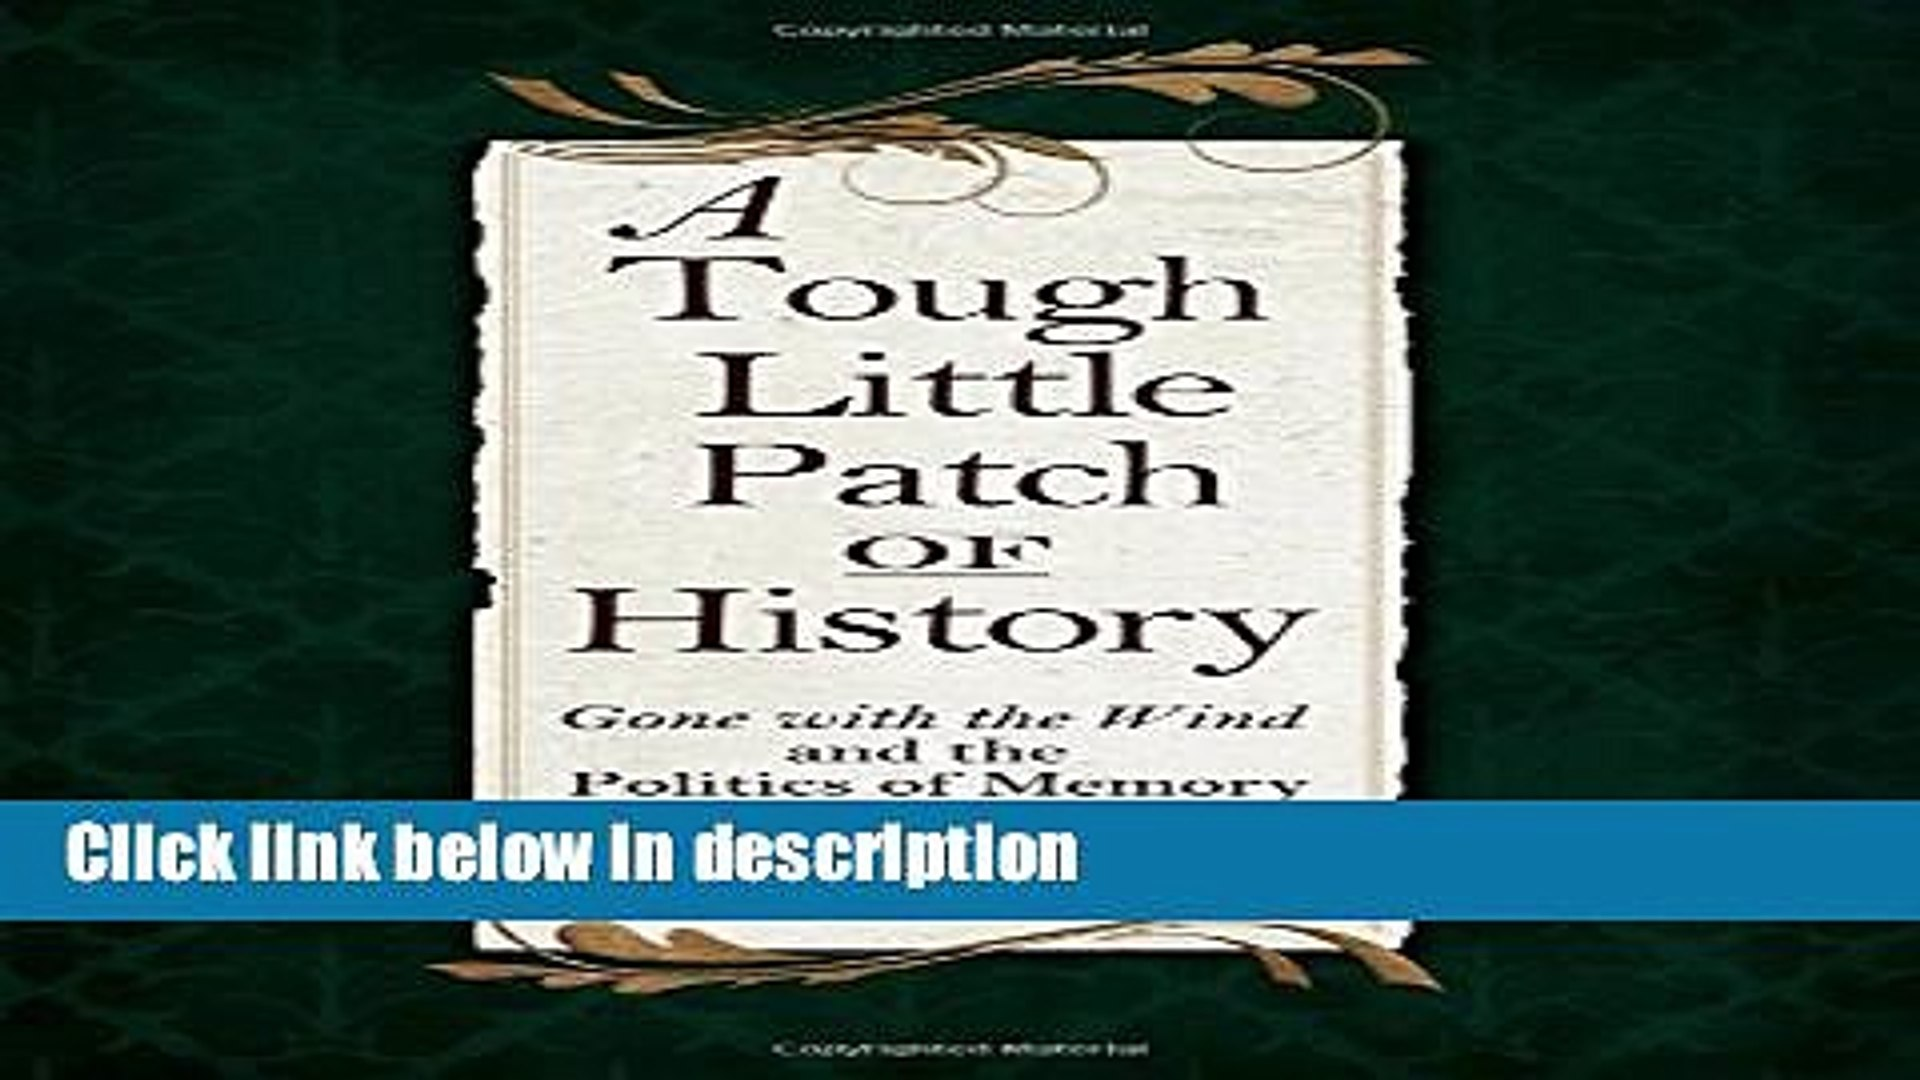 Books A Tough Little Patch of History: Gone with the Wind and the Politics of Memory Full Download